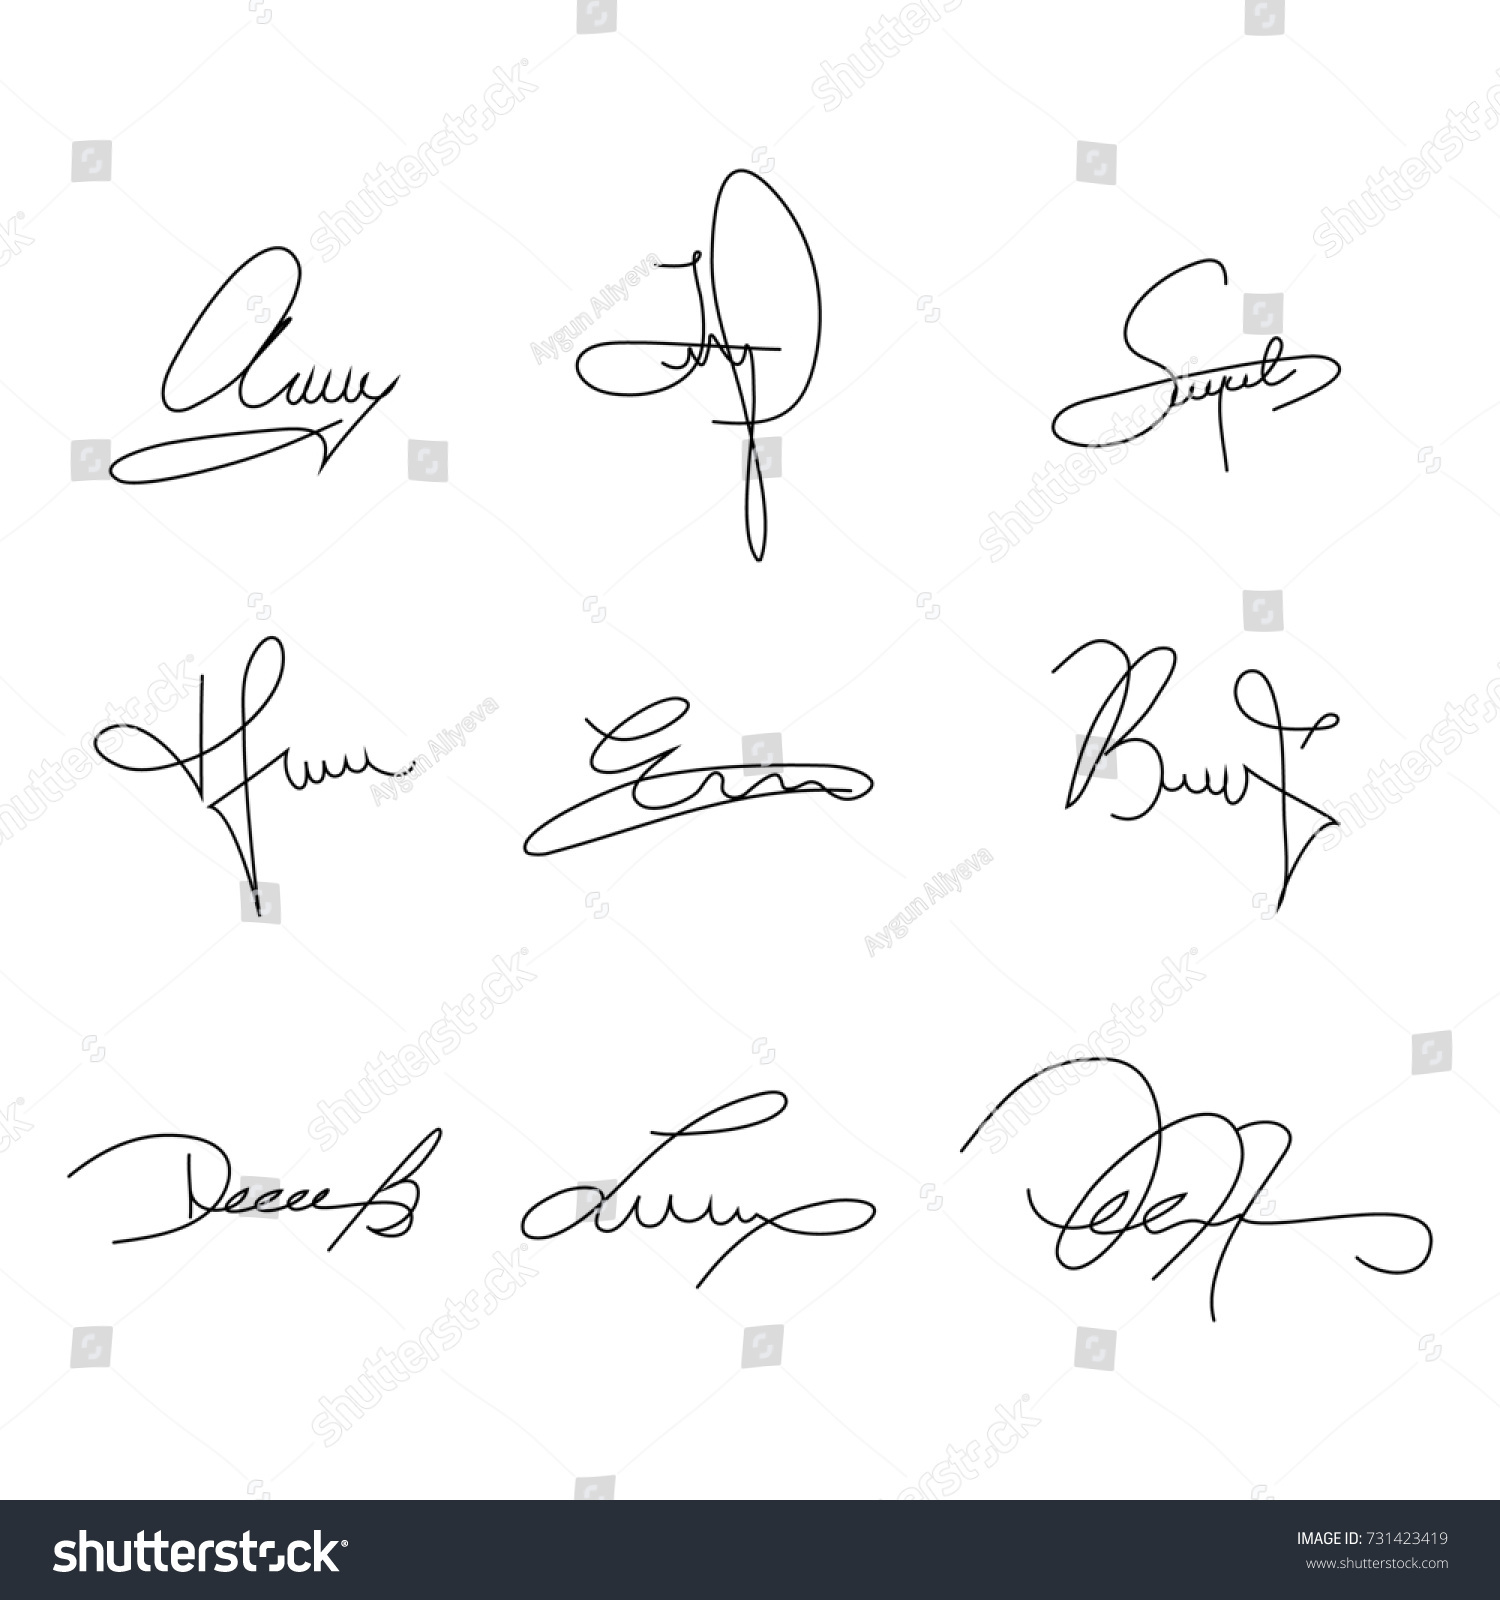 Collection of signature samples to use in your design vector illustration